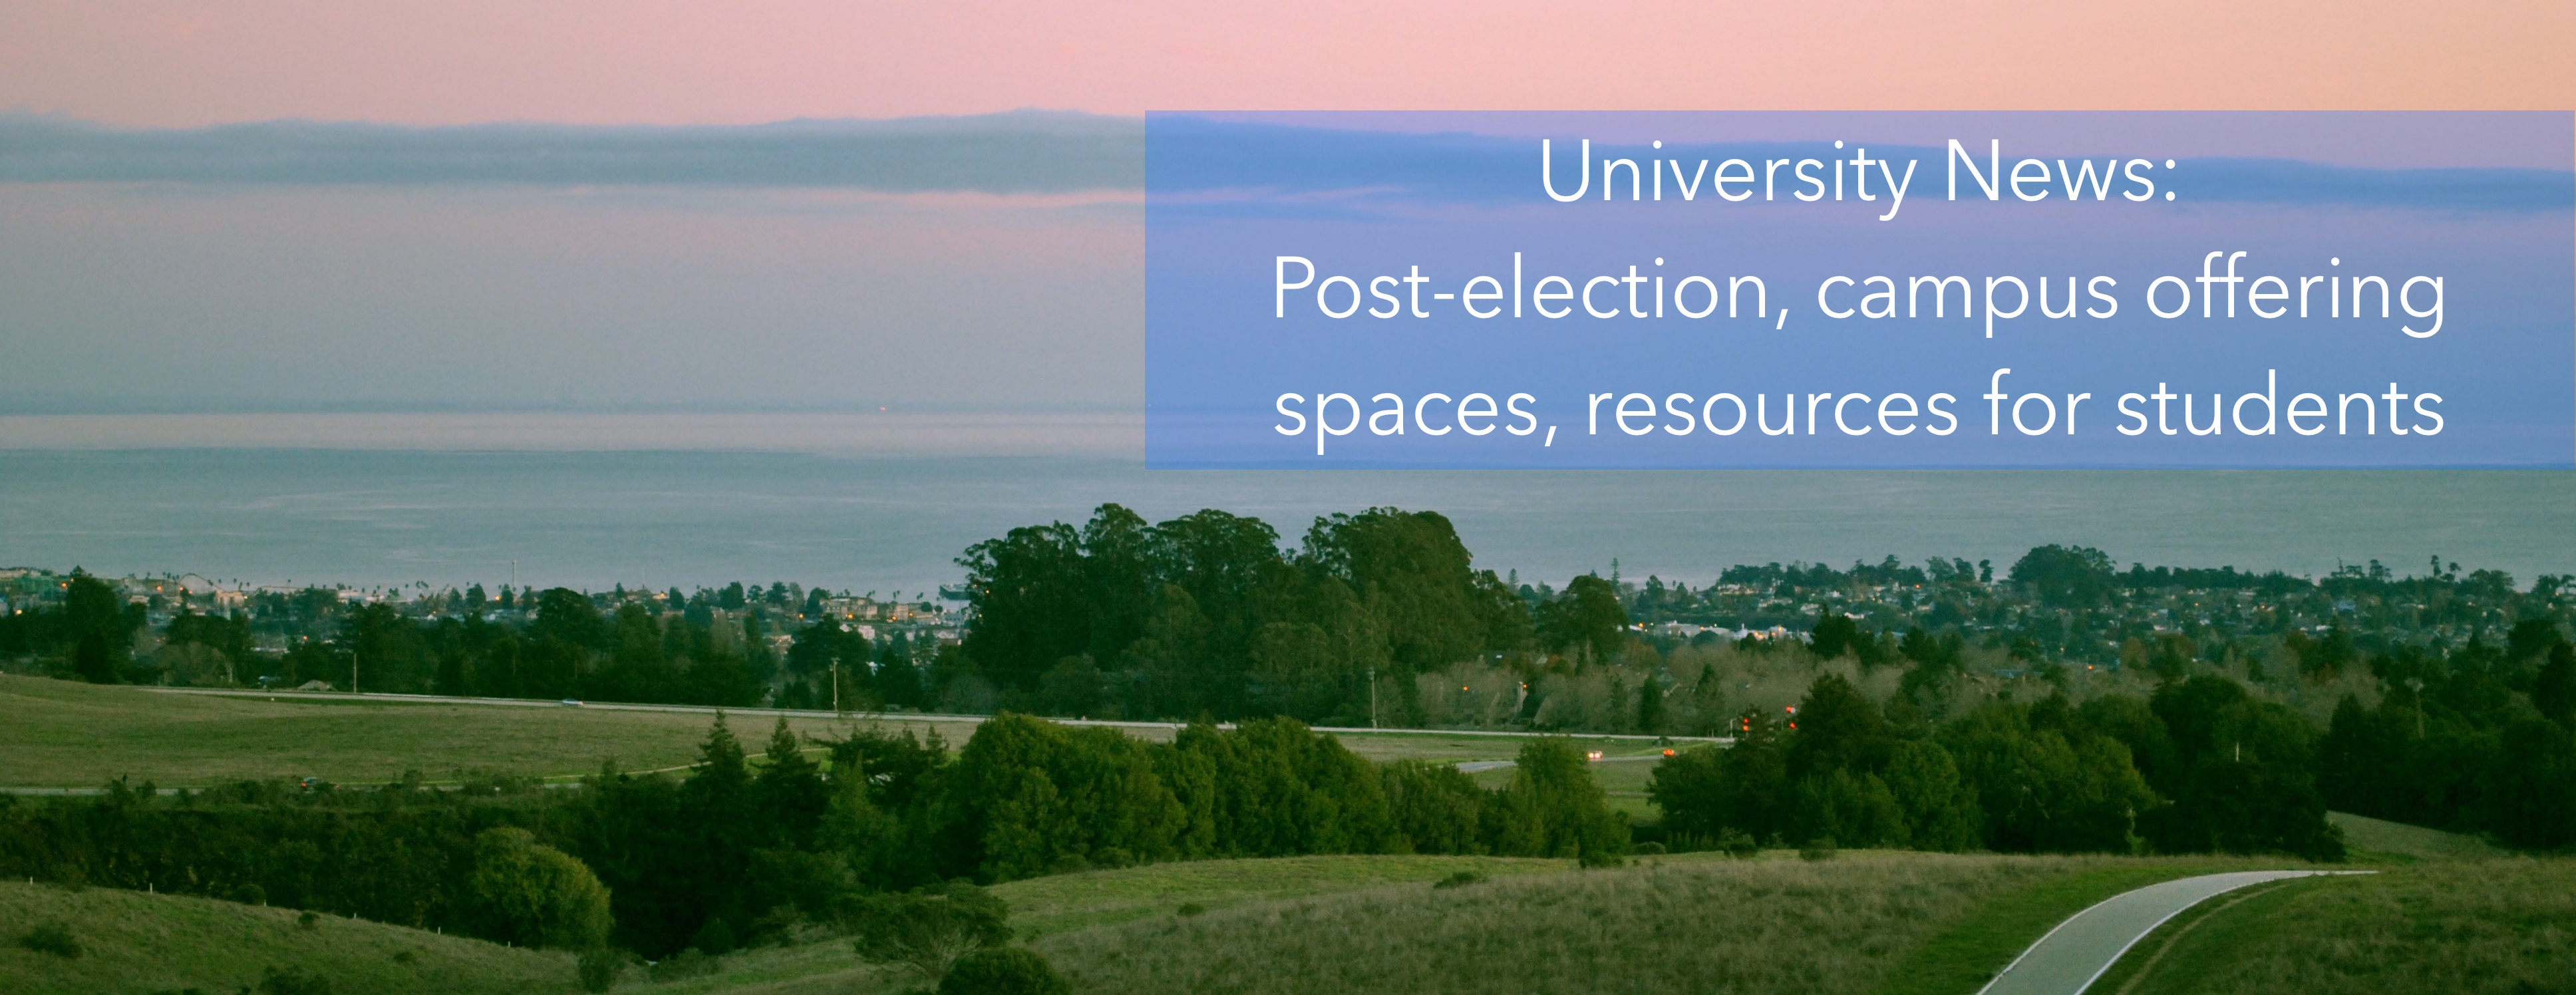 Post-Election Student Resources and Campus Spaces (News Article)